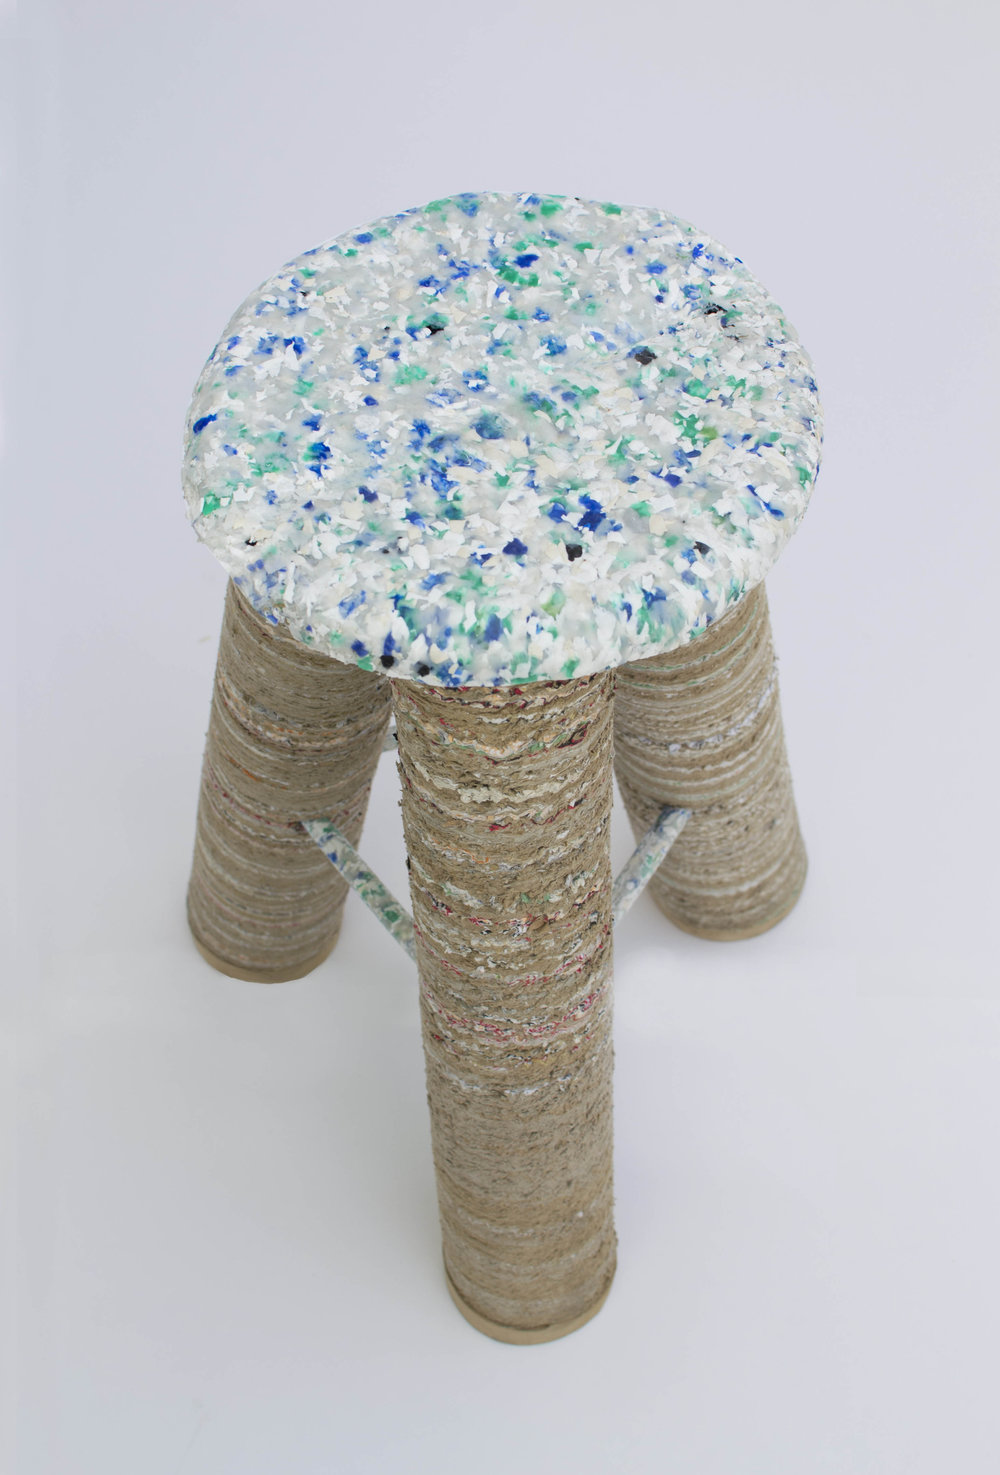 Prolong Stool by Charlotte Allen